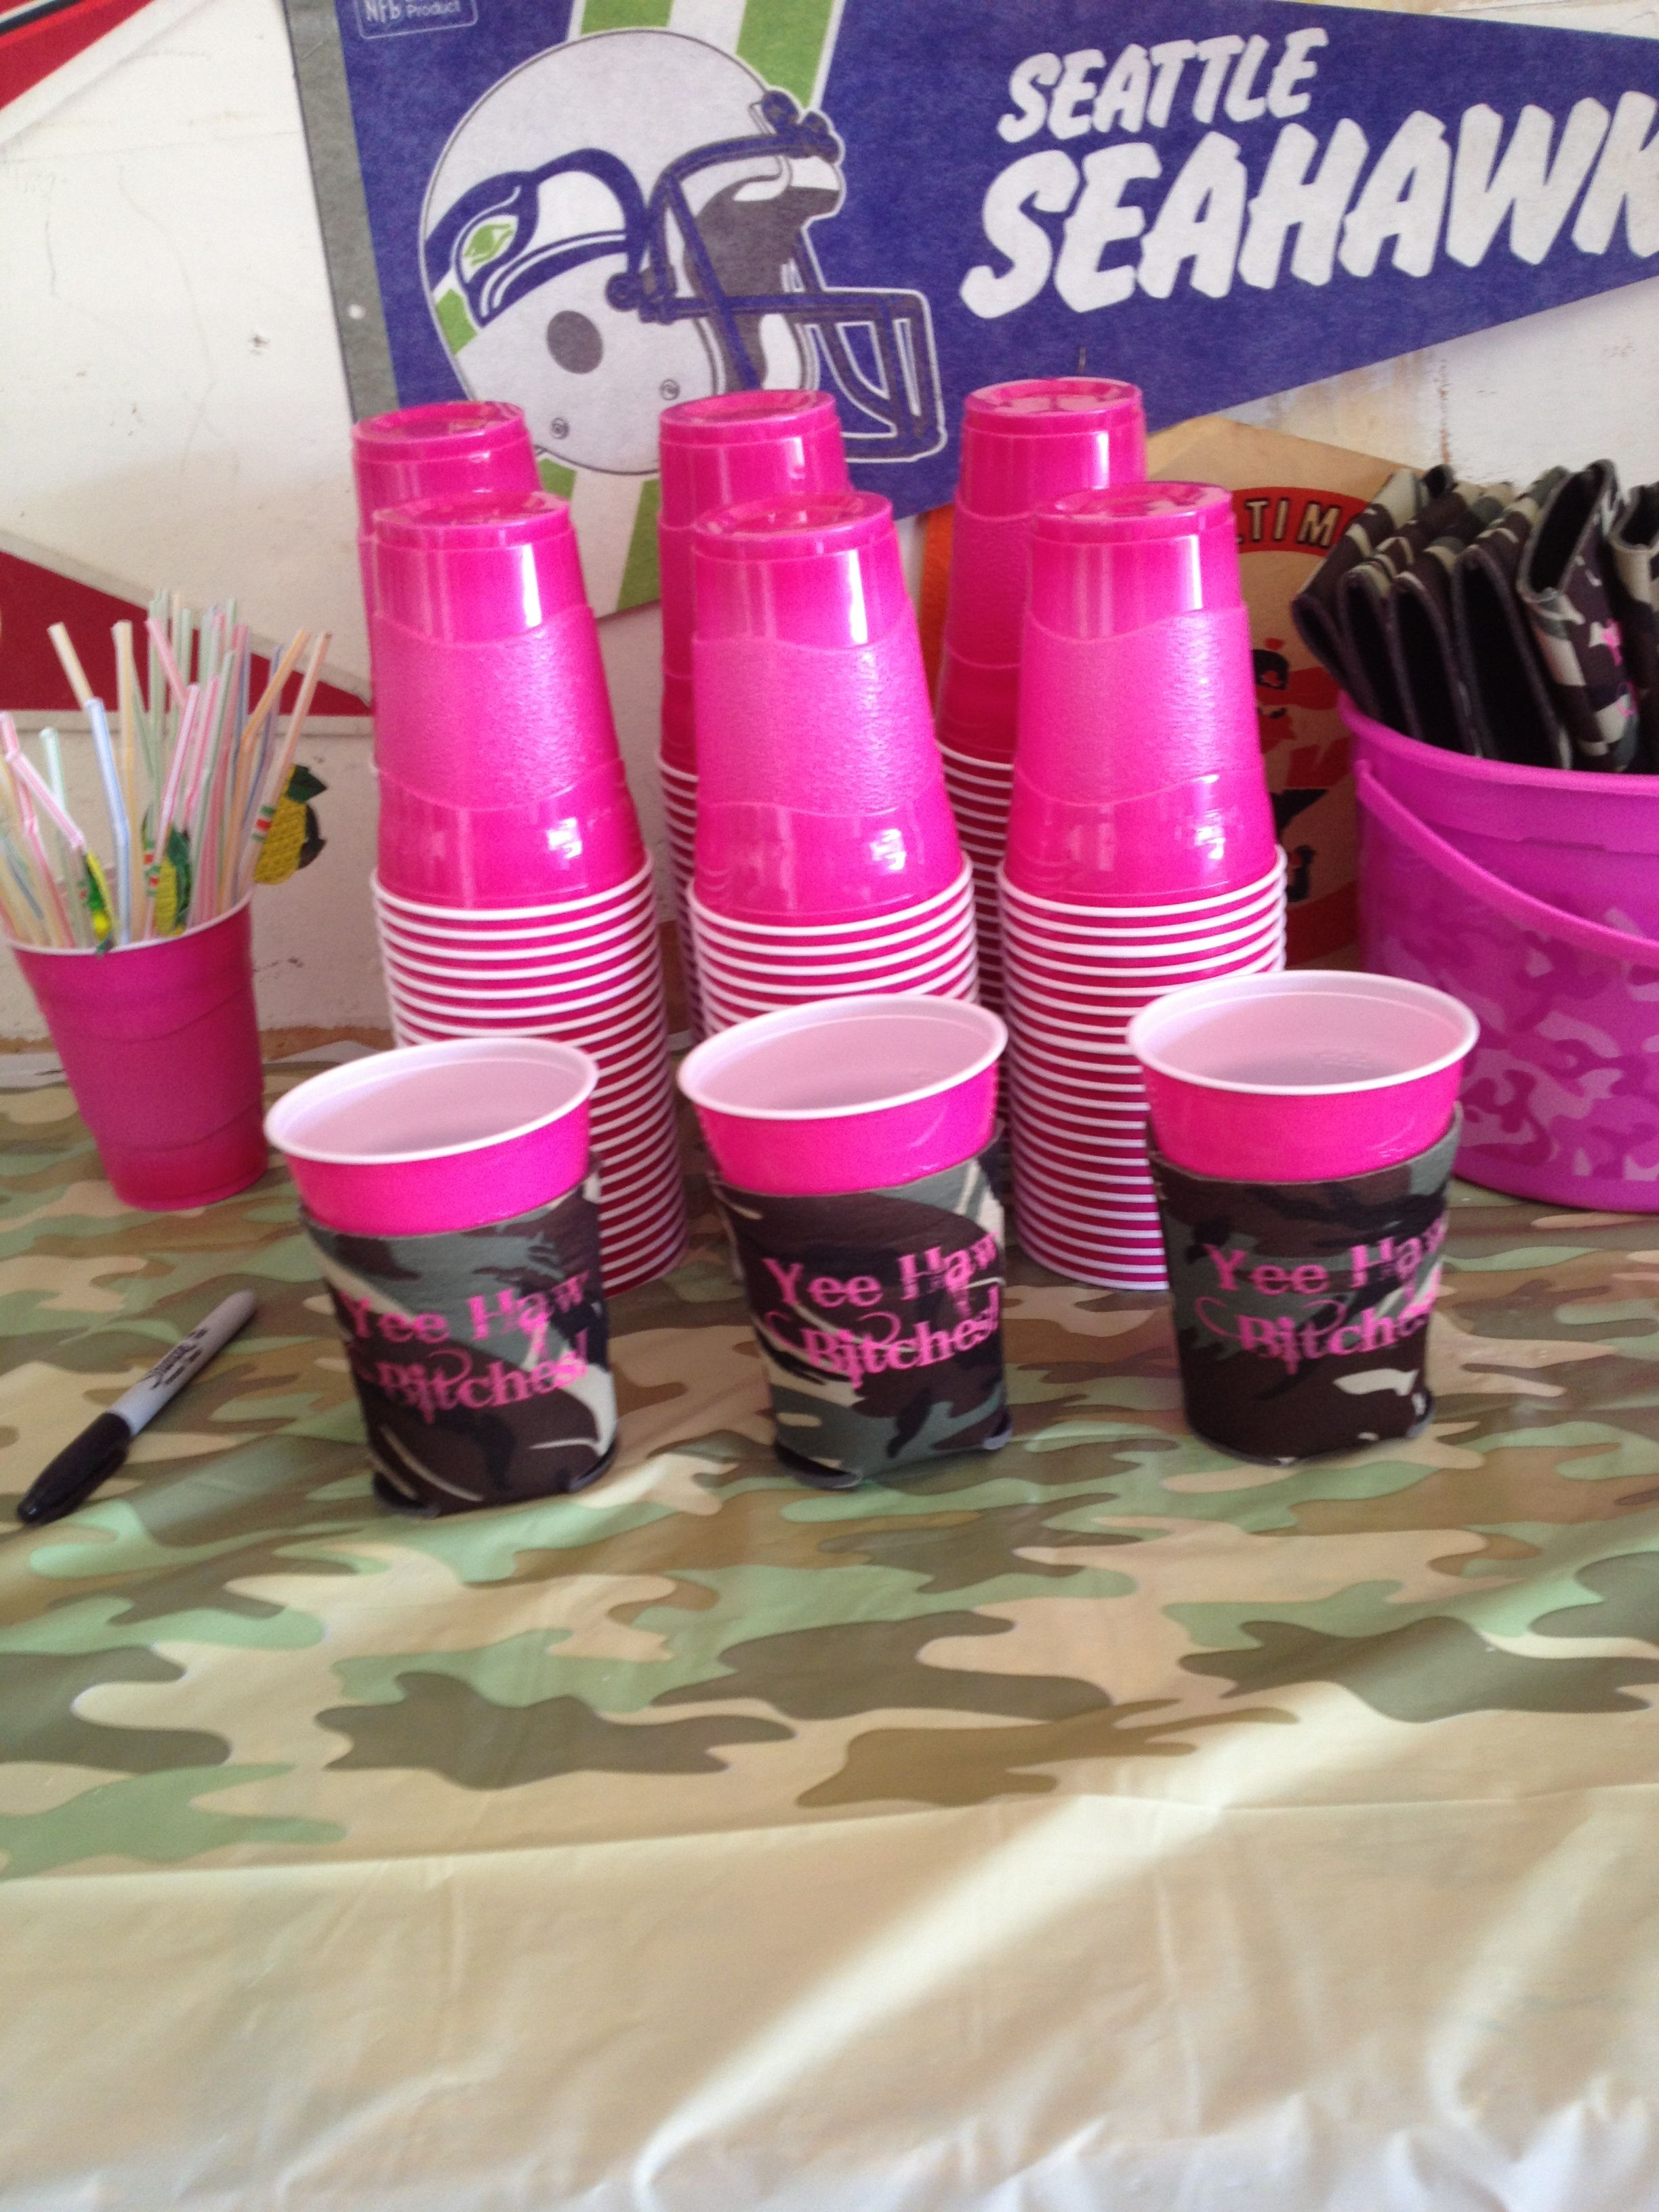 Koozies With Yee Haw Bitches On Them B I R T H D A Y P A R T Y